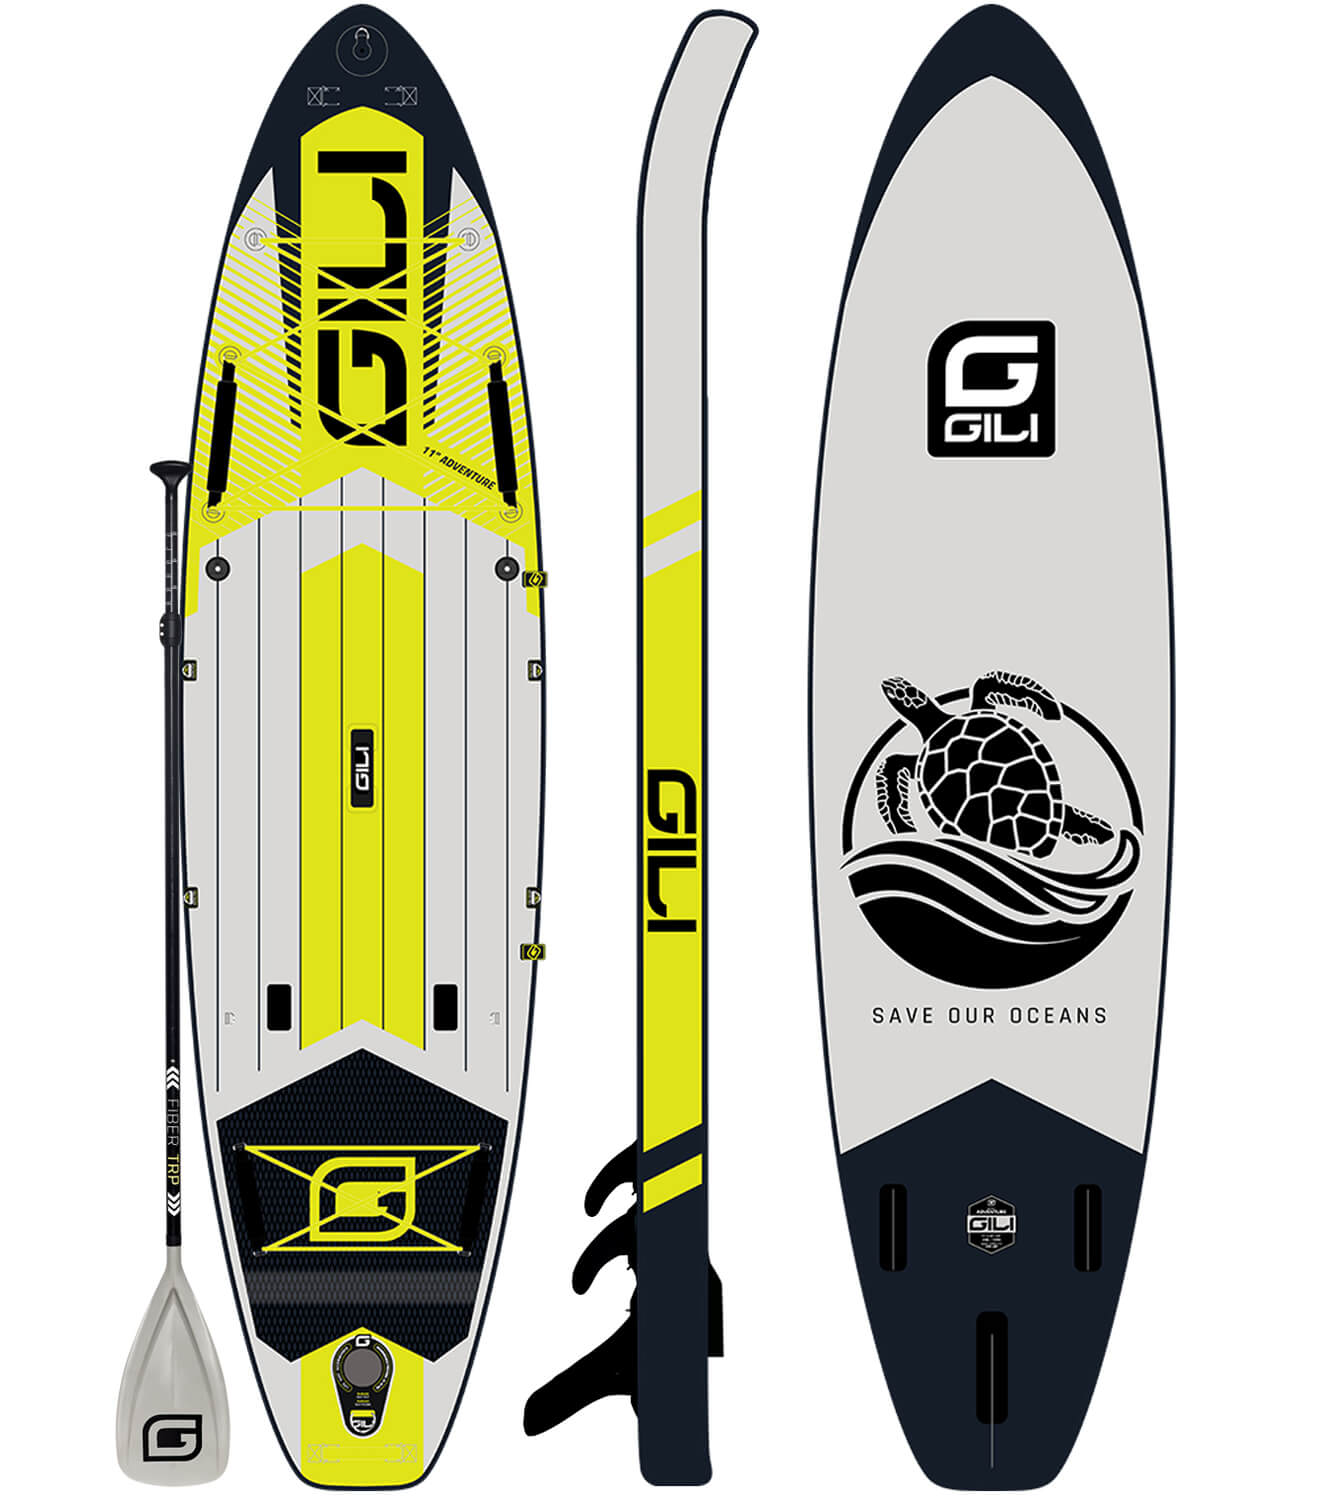 GILI Adventure Best Touring Board and Performance